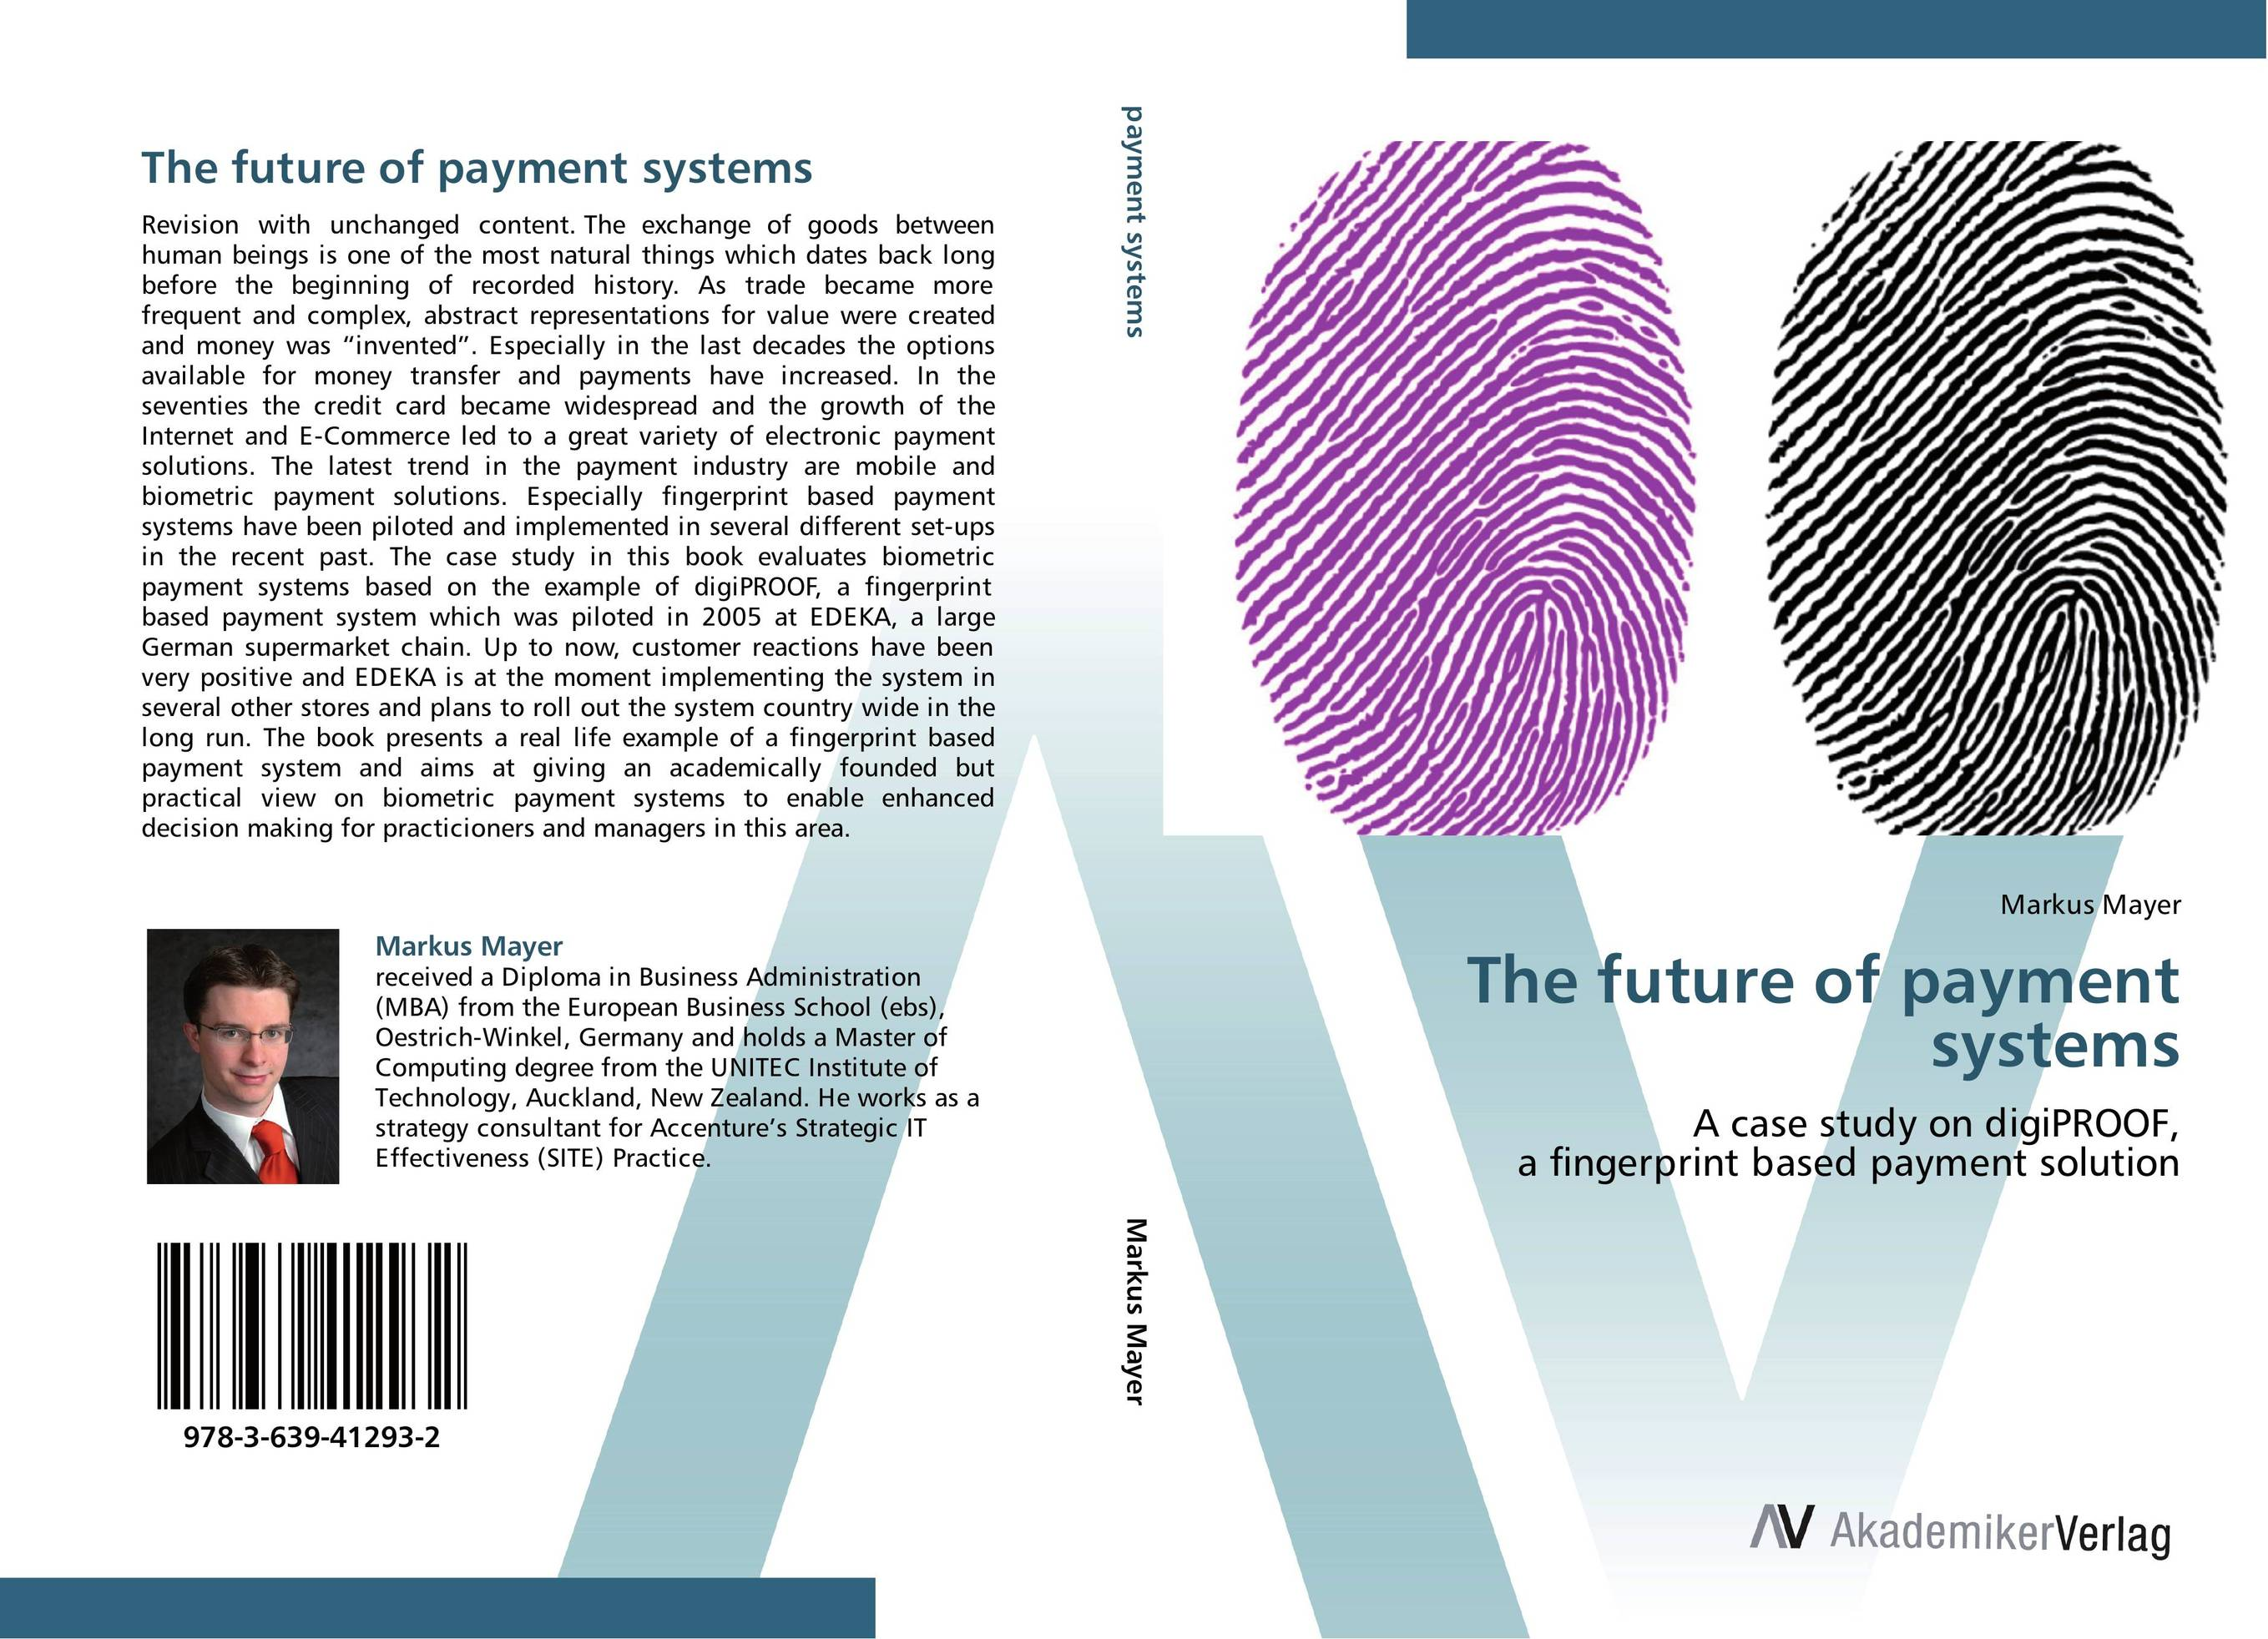 The future of payment systems only for sample payment